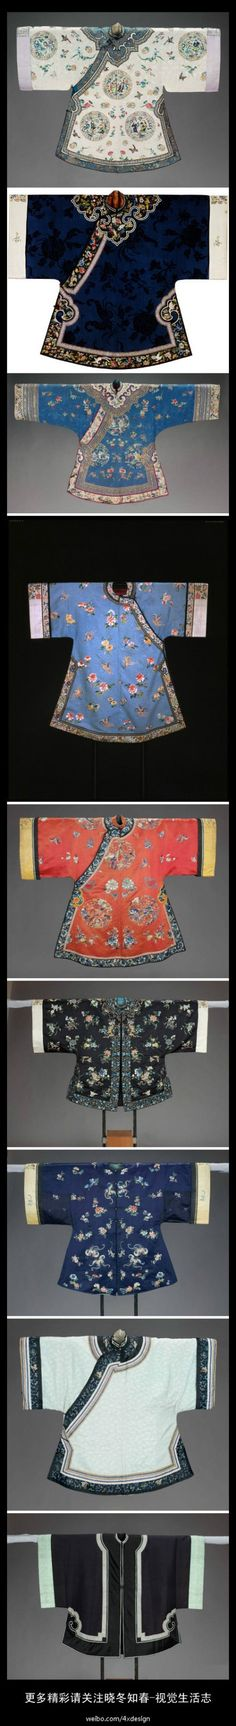 different types of Chinese jackets of Qing dynasty. China. Chinese costume